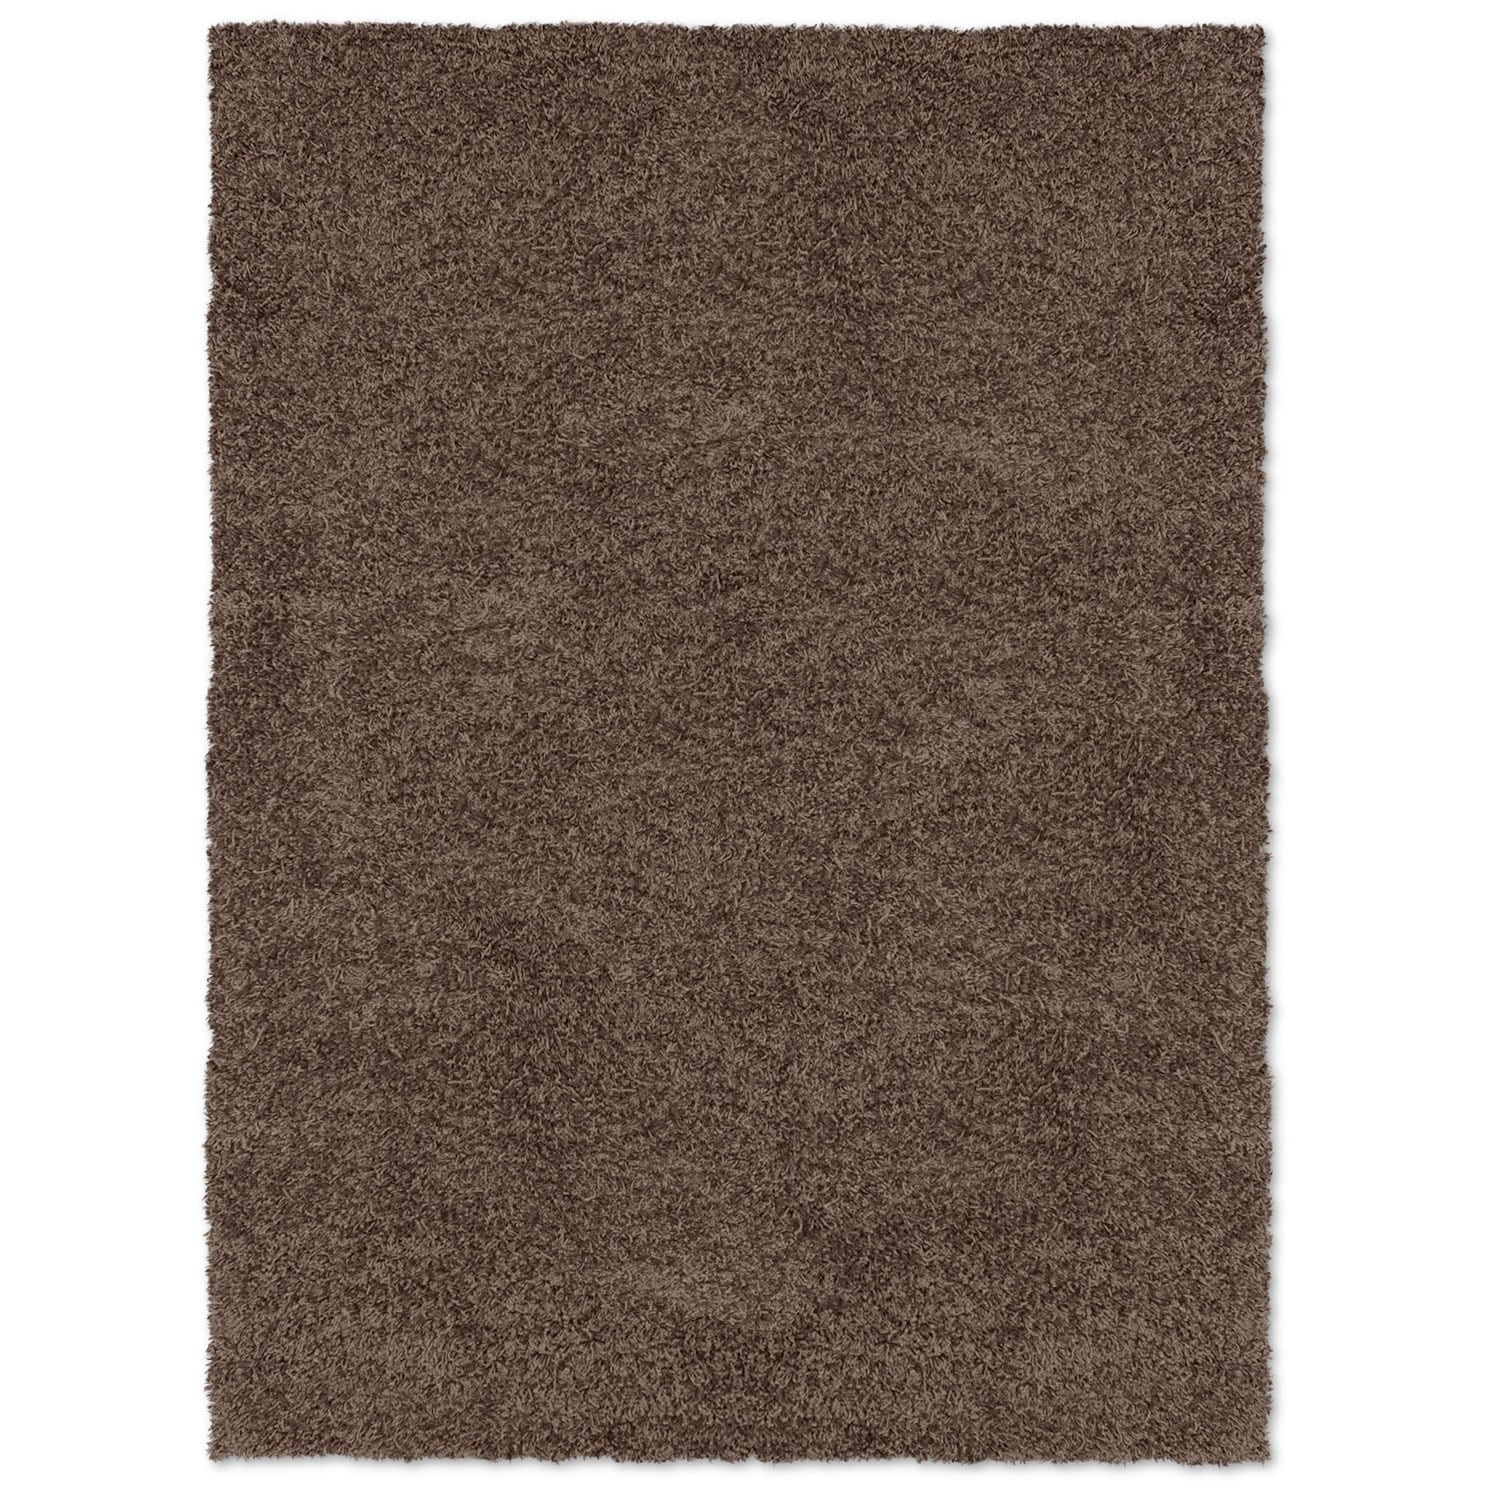 Rugs - Comfort Chocolate Shag Area Rug (5' x 8')